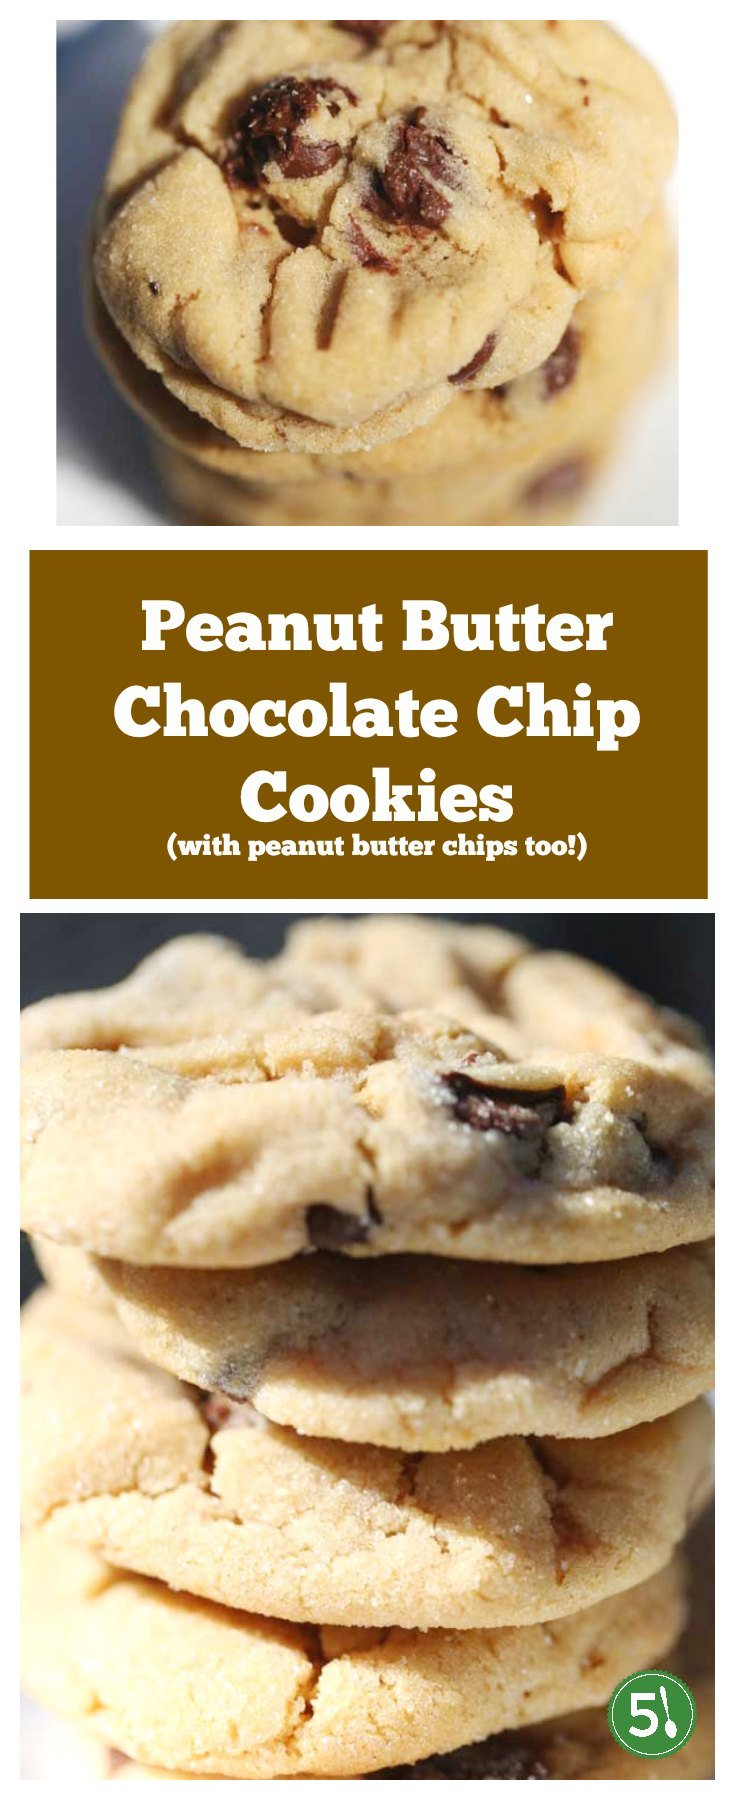 Easy peanut butter chocolate chip cookie recipe that produces chewy and soft cookies with a secret ingredient of peanut butter chips!